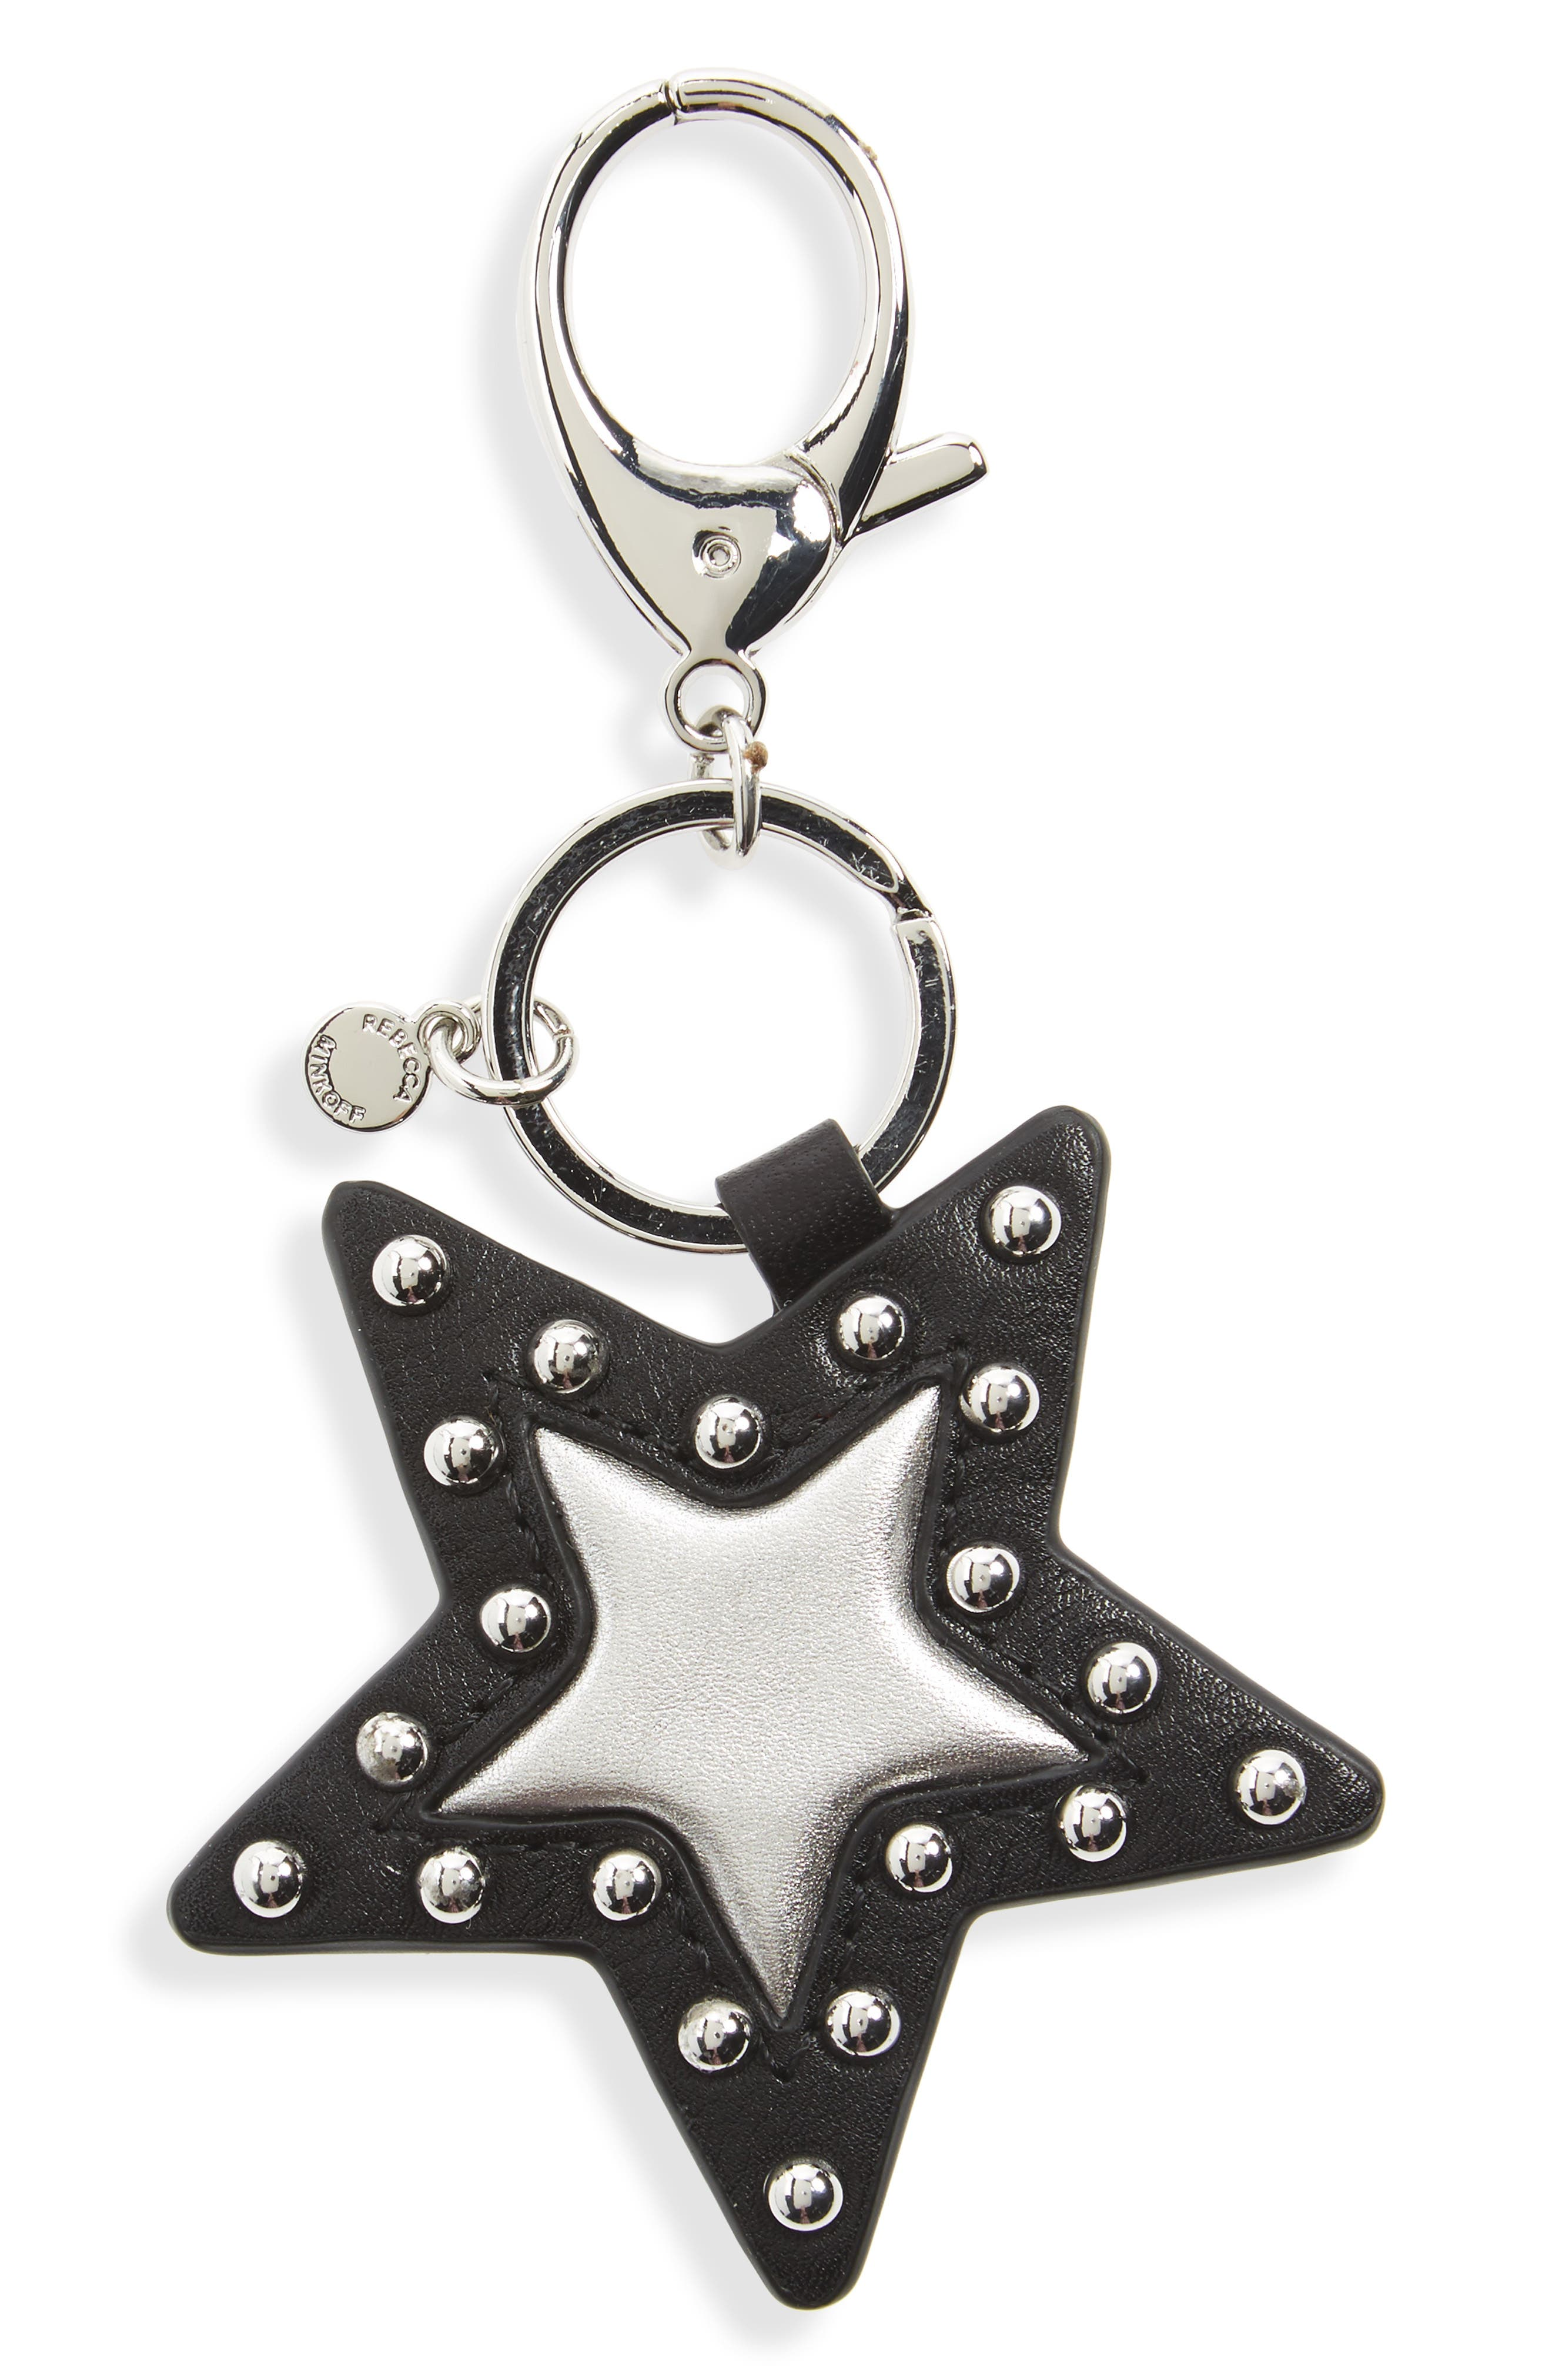 Studed Star Leather Bag Charm,                         Main,                         color, Black/ Silver